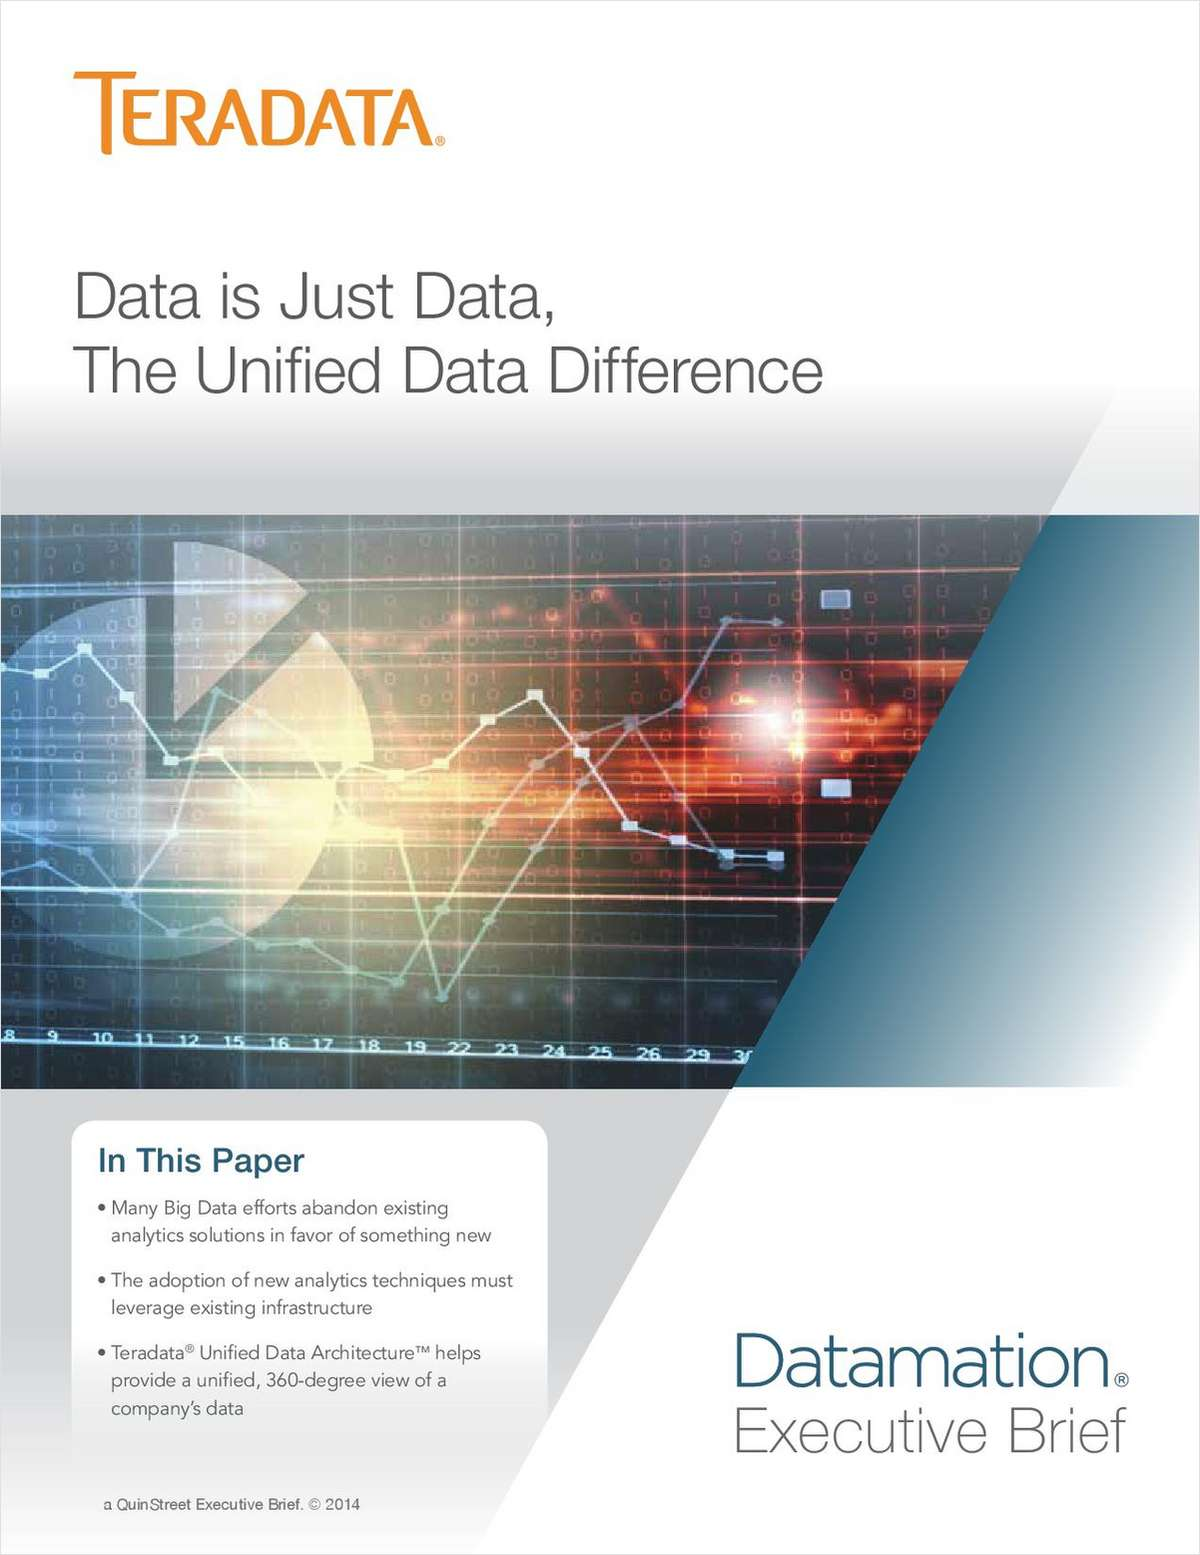 Data is Just Data- The Unified Data Difference